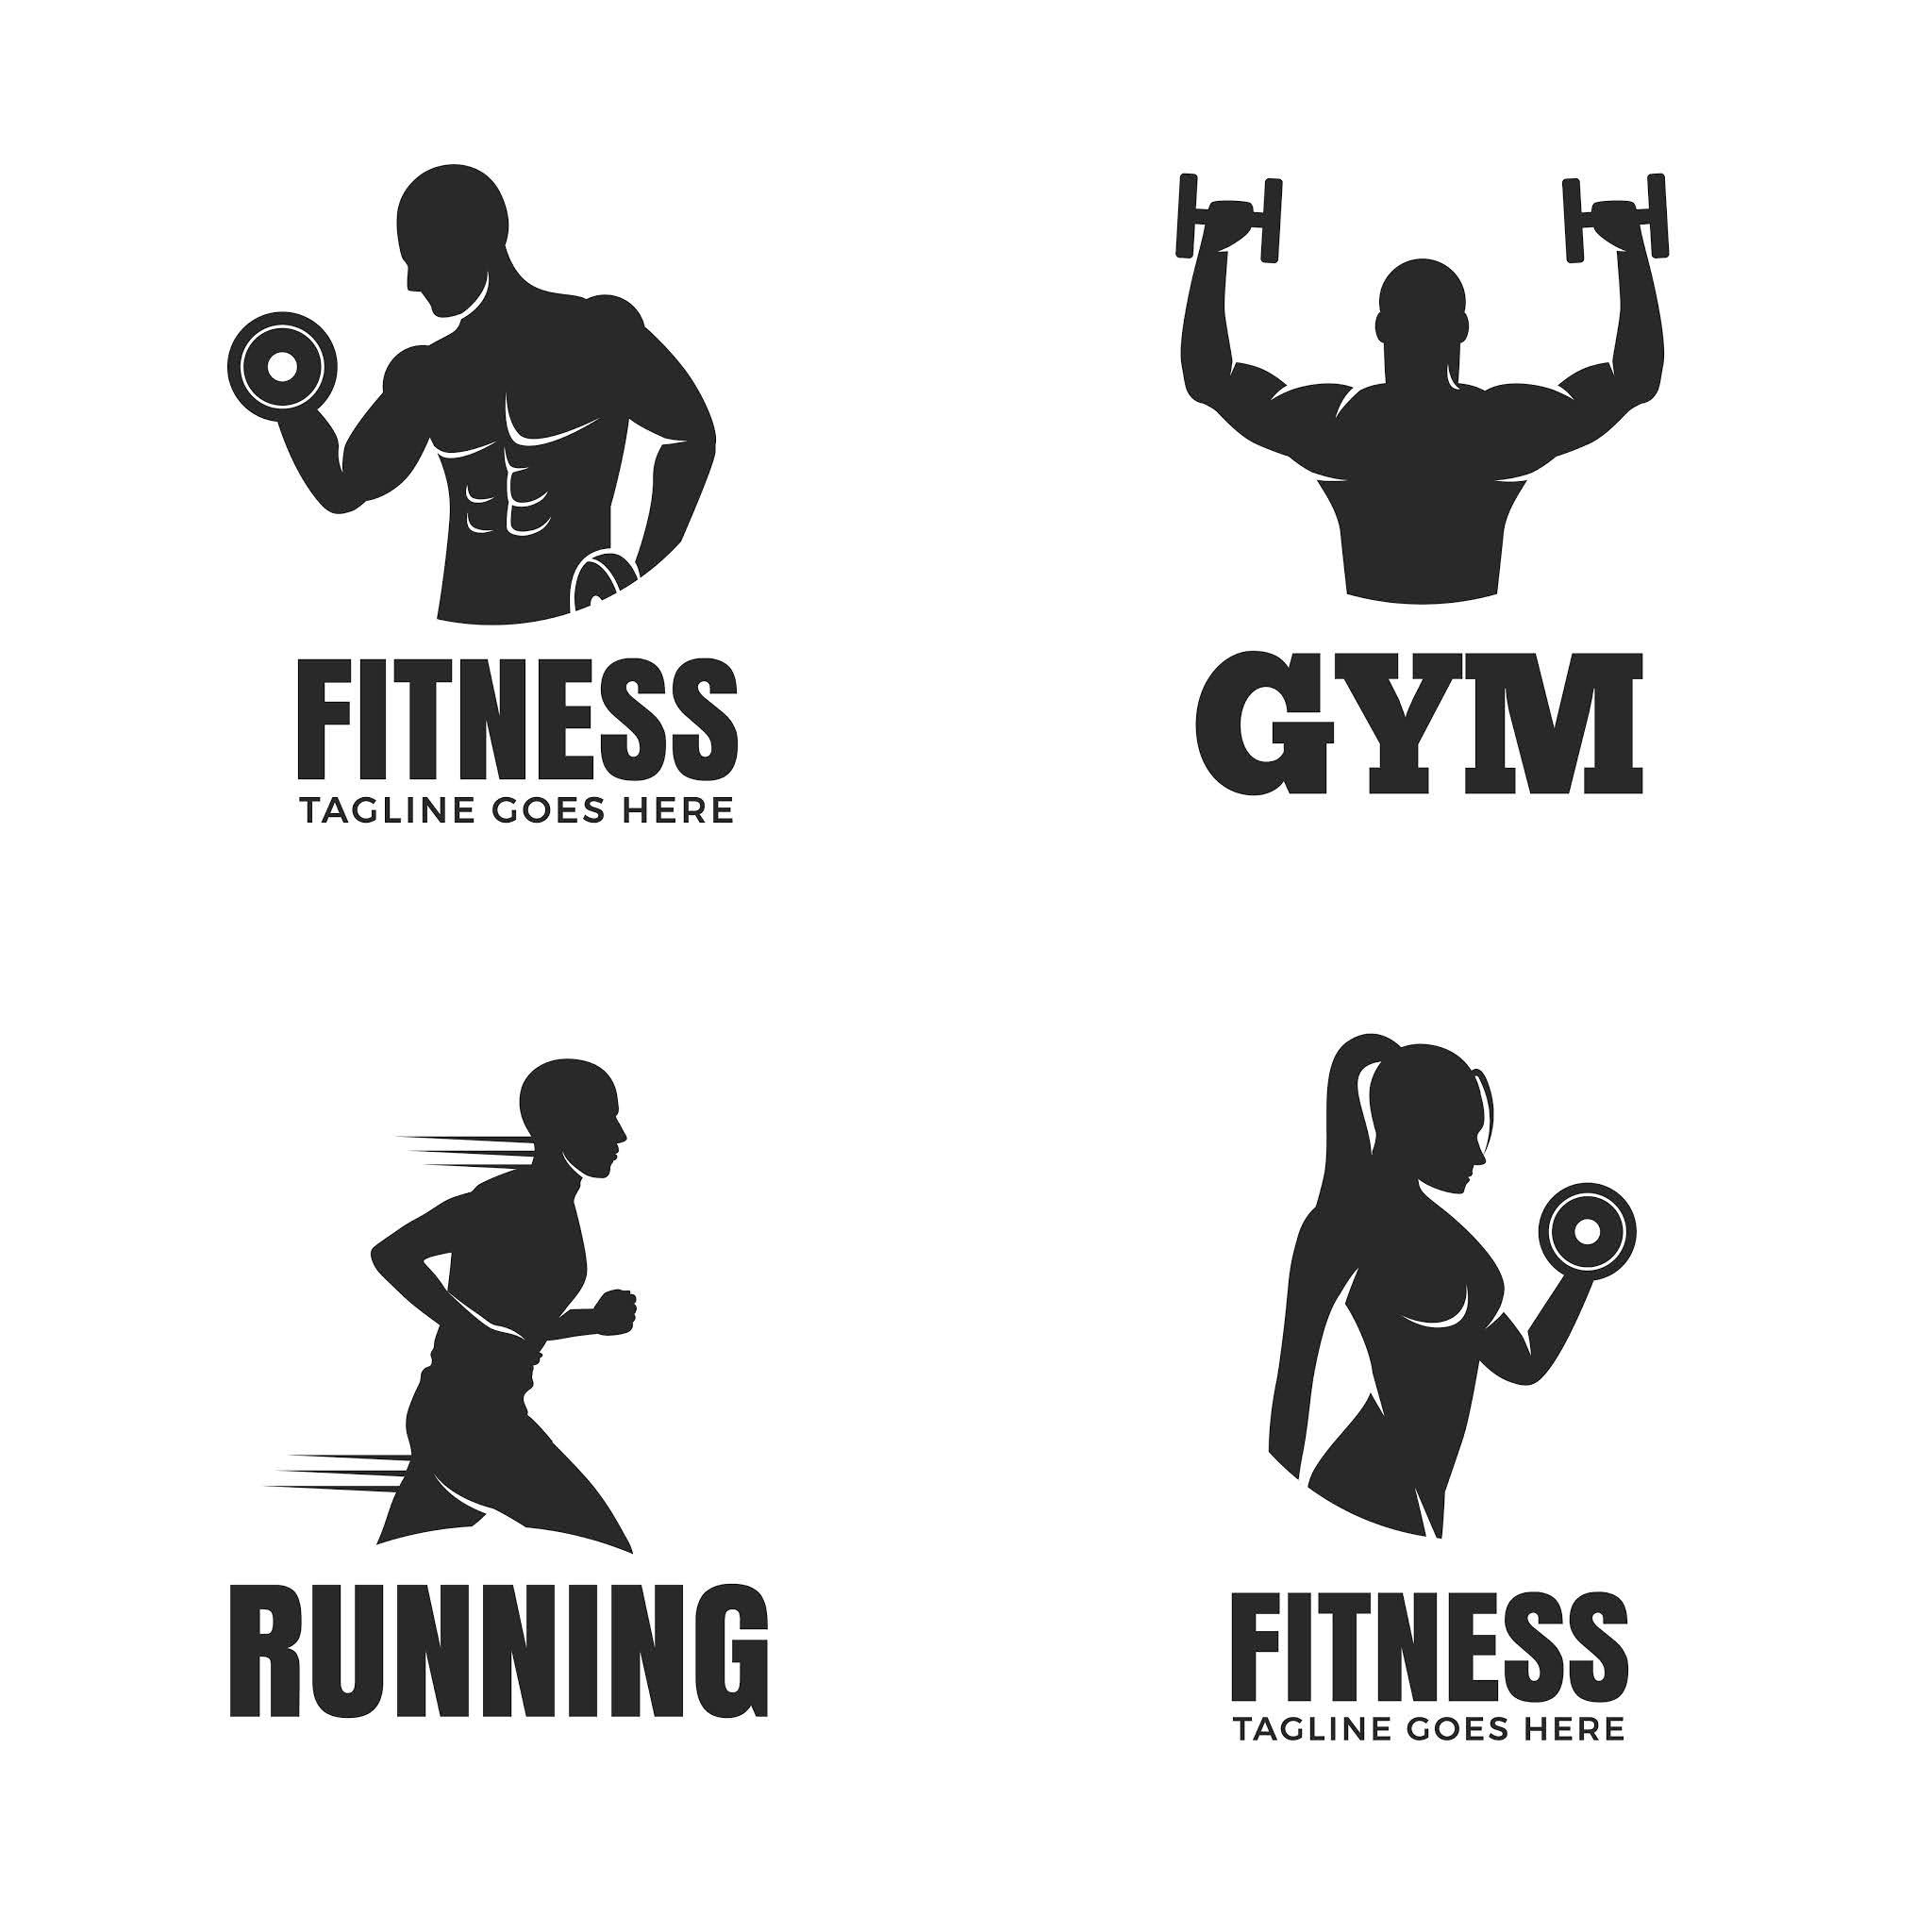 Download logo for gyms and athletics in eps and psd format